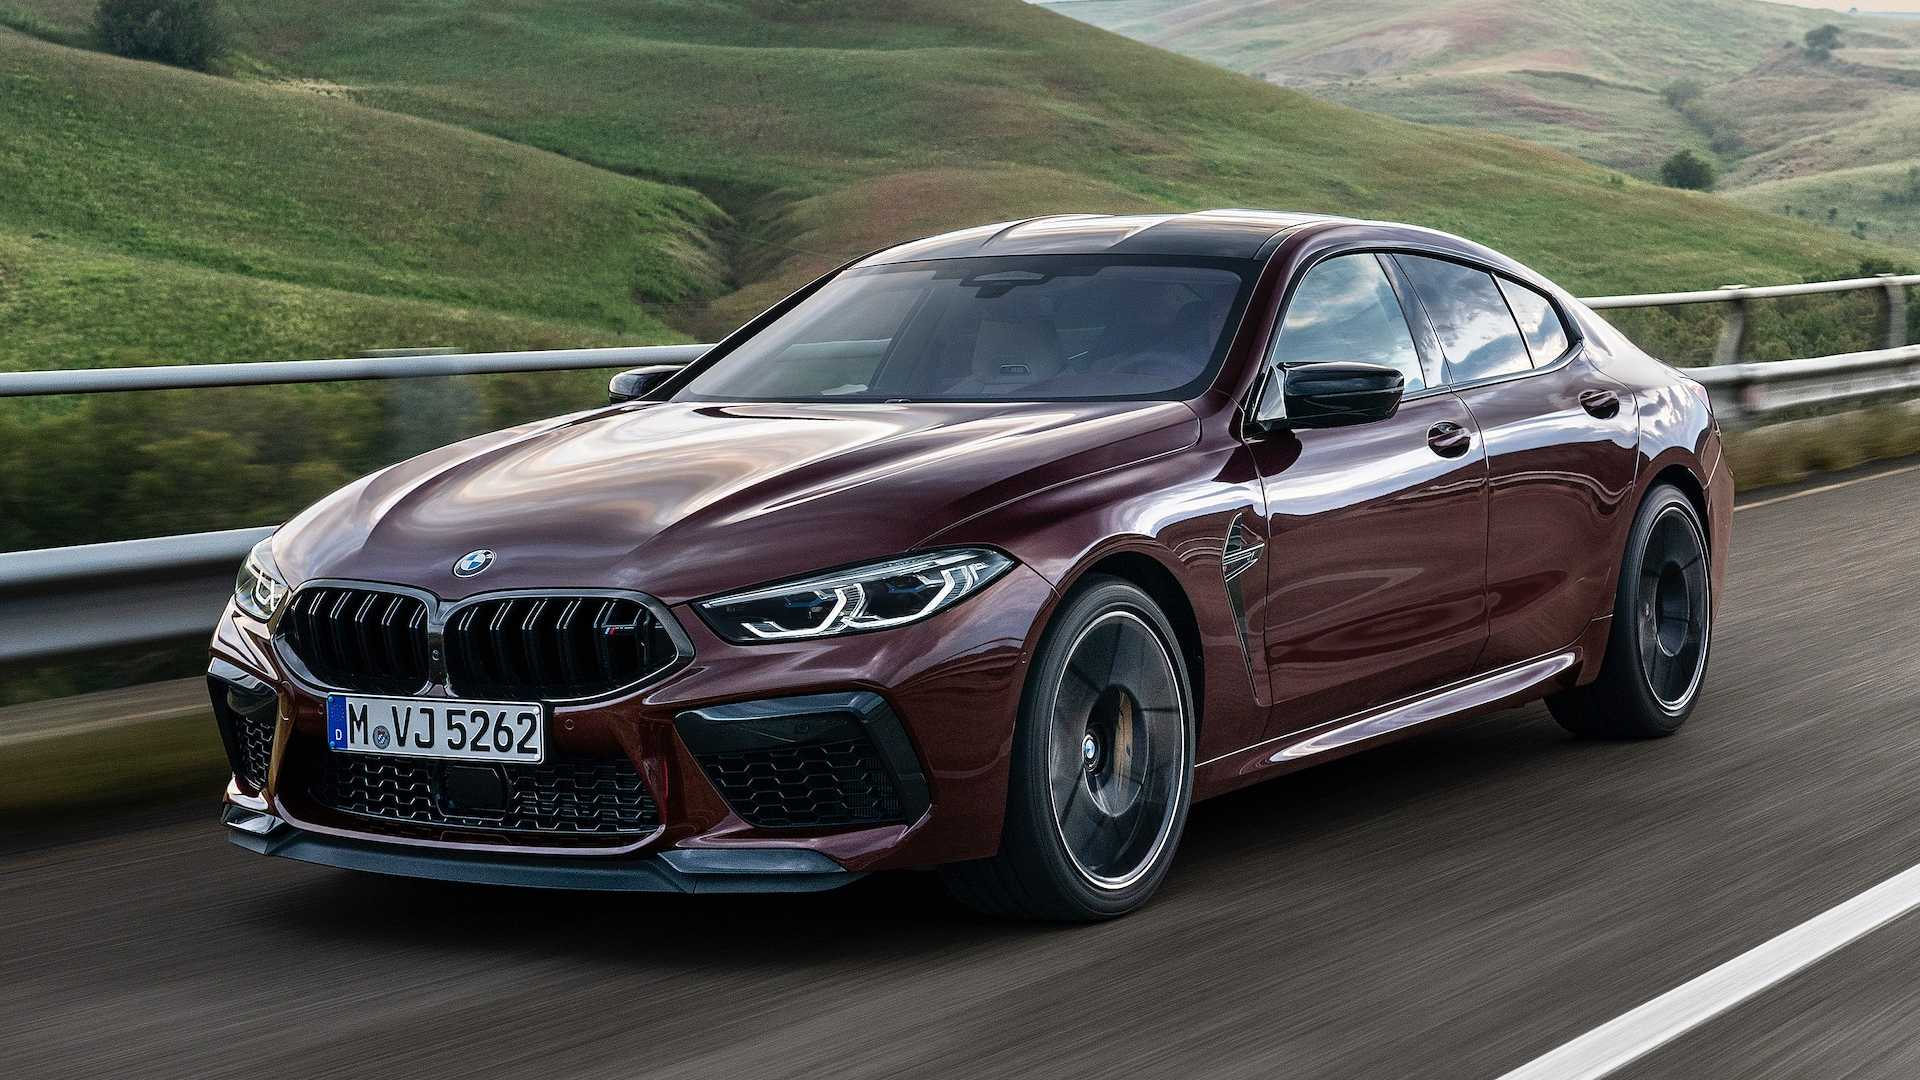 2020-bmw-m8-gran-coupe-competition-21